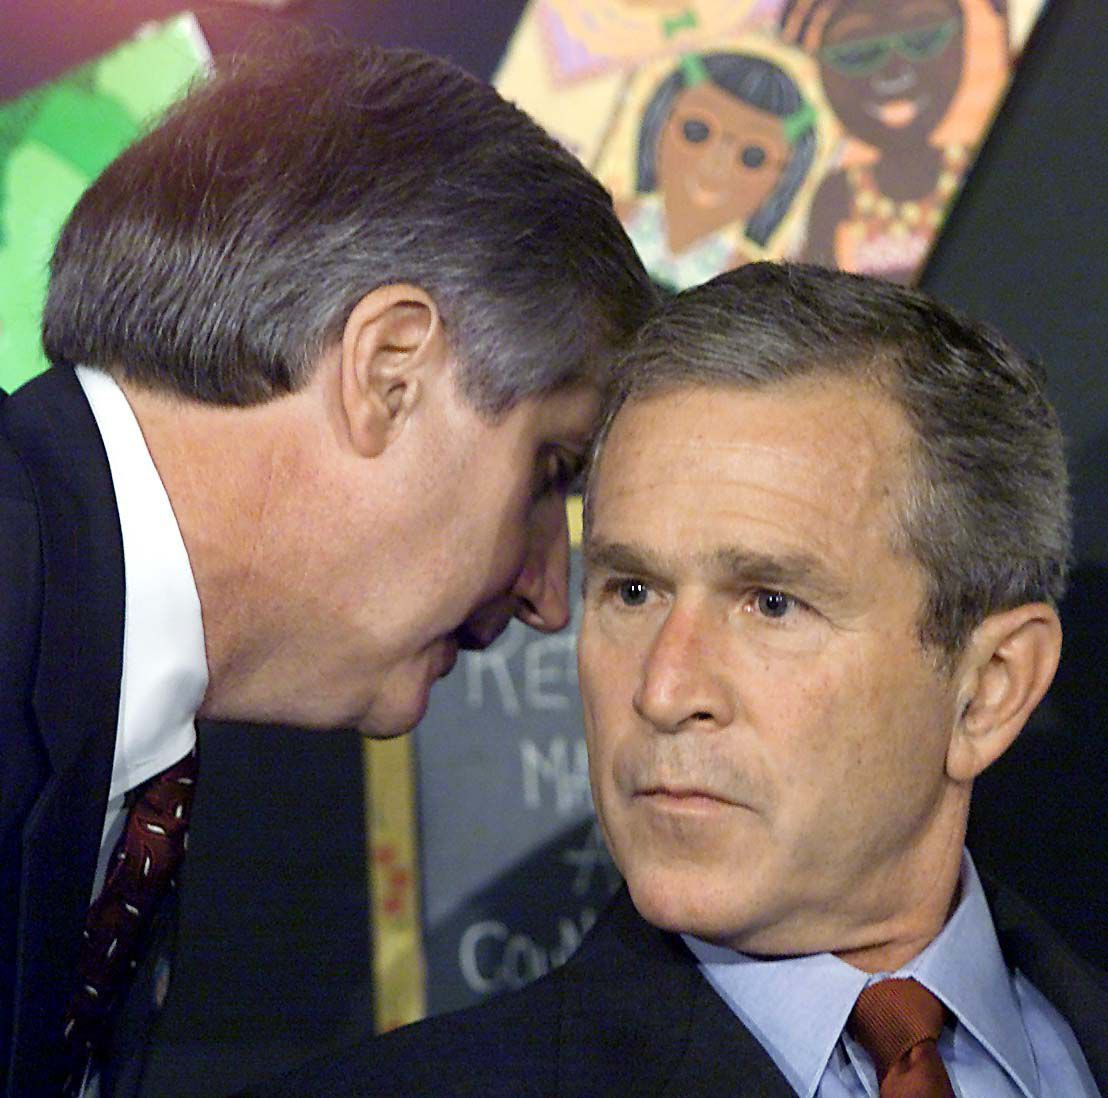 Former President George W. Buck listens as his chief of staff delivers news on Sept. 11, 2001.